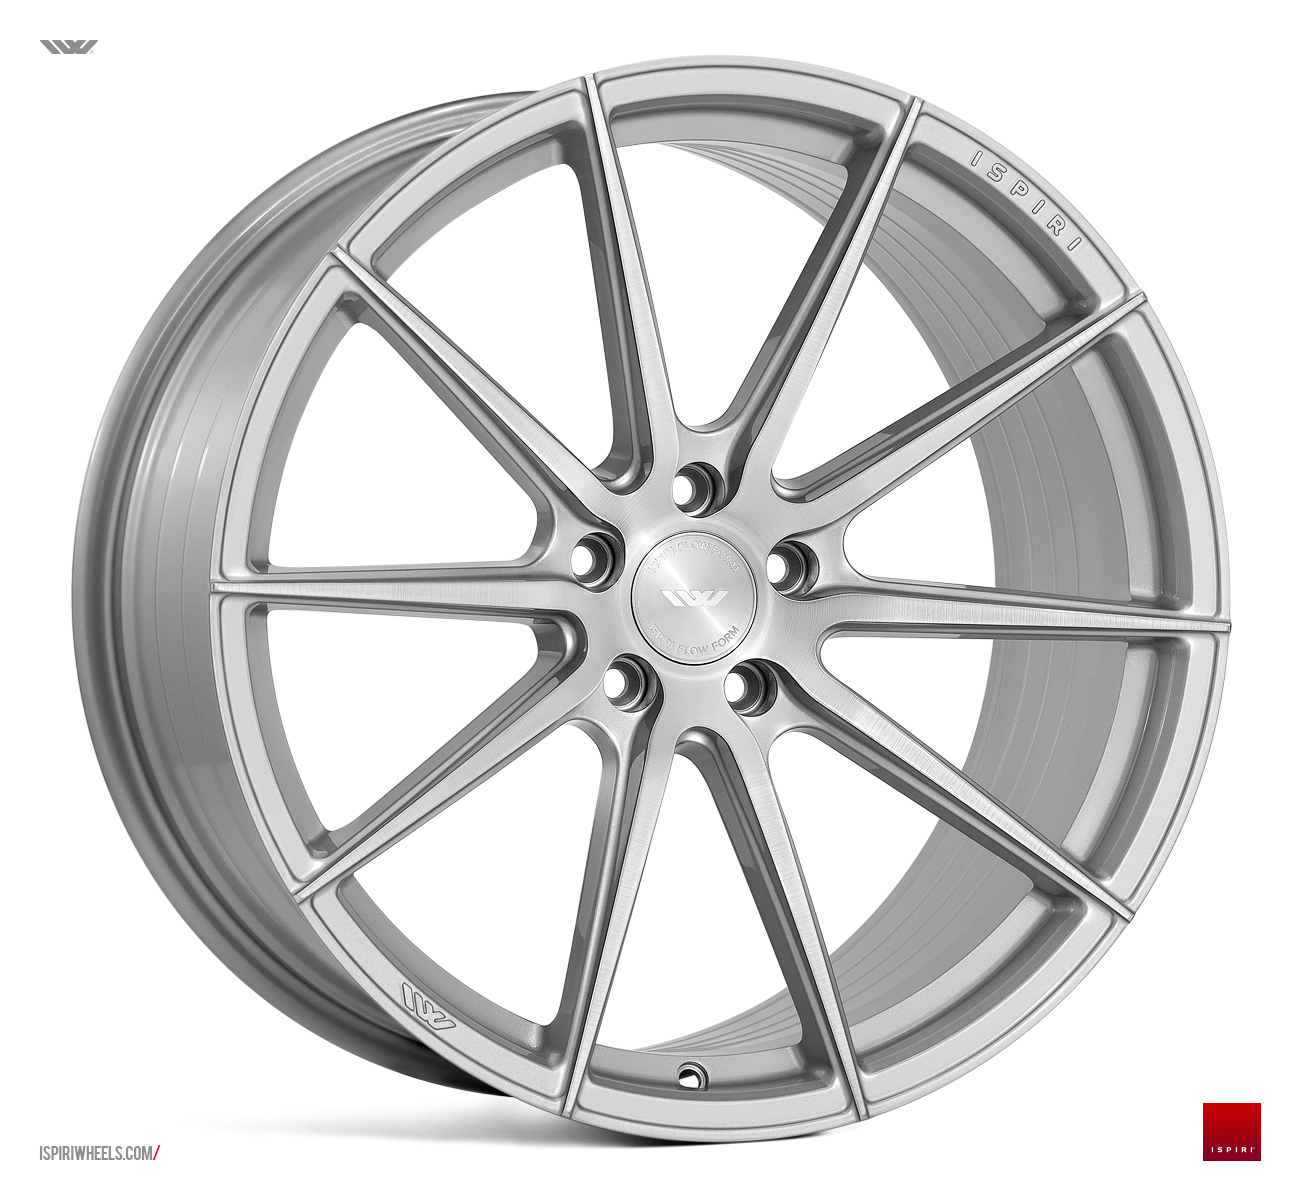 "NEW 19"" ISPIRI FFR1 MULTI-SPOKE ALLOYS IN SILVER WITH BRUSHED POLISH FACE, DEEPER CONCAVE 10"" REARS"